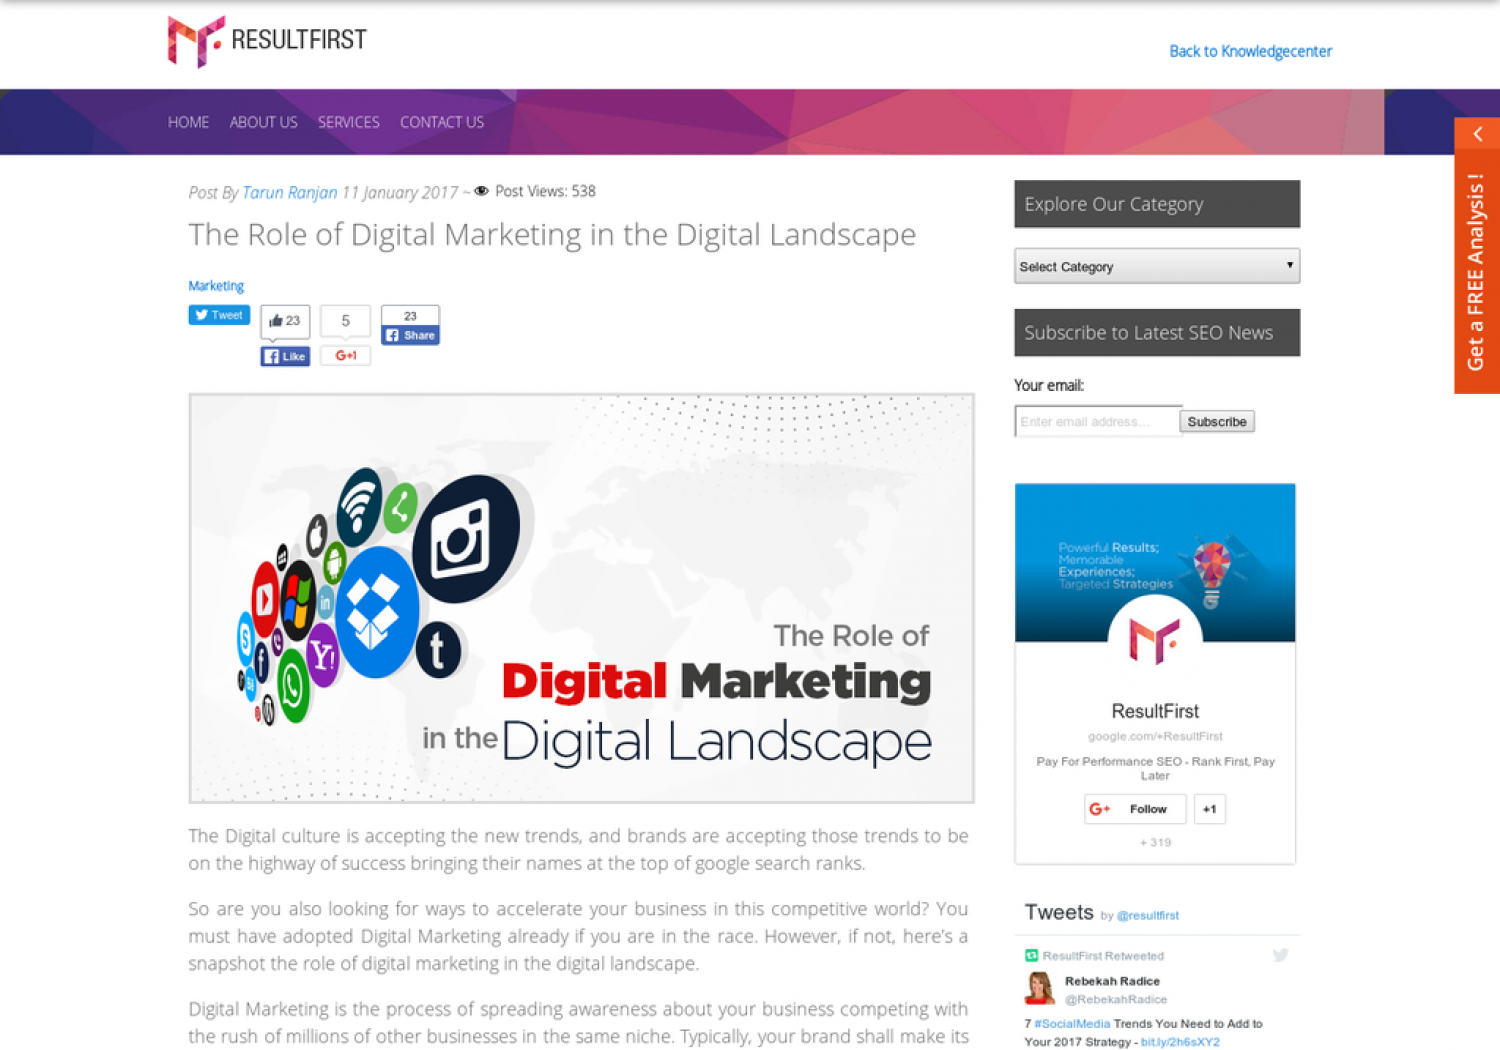 The Role of Digital Marketing in the Digital Landscape Infographic